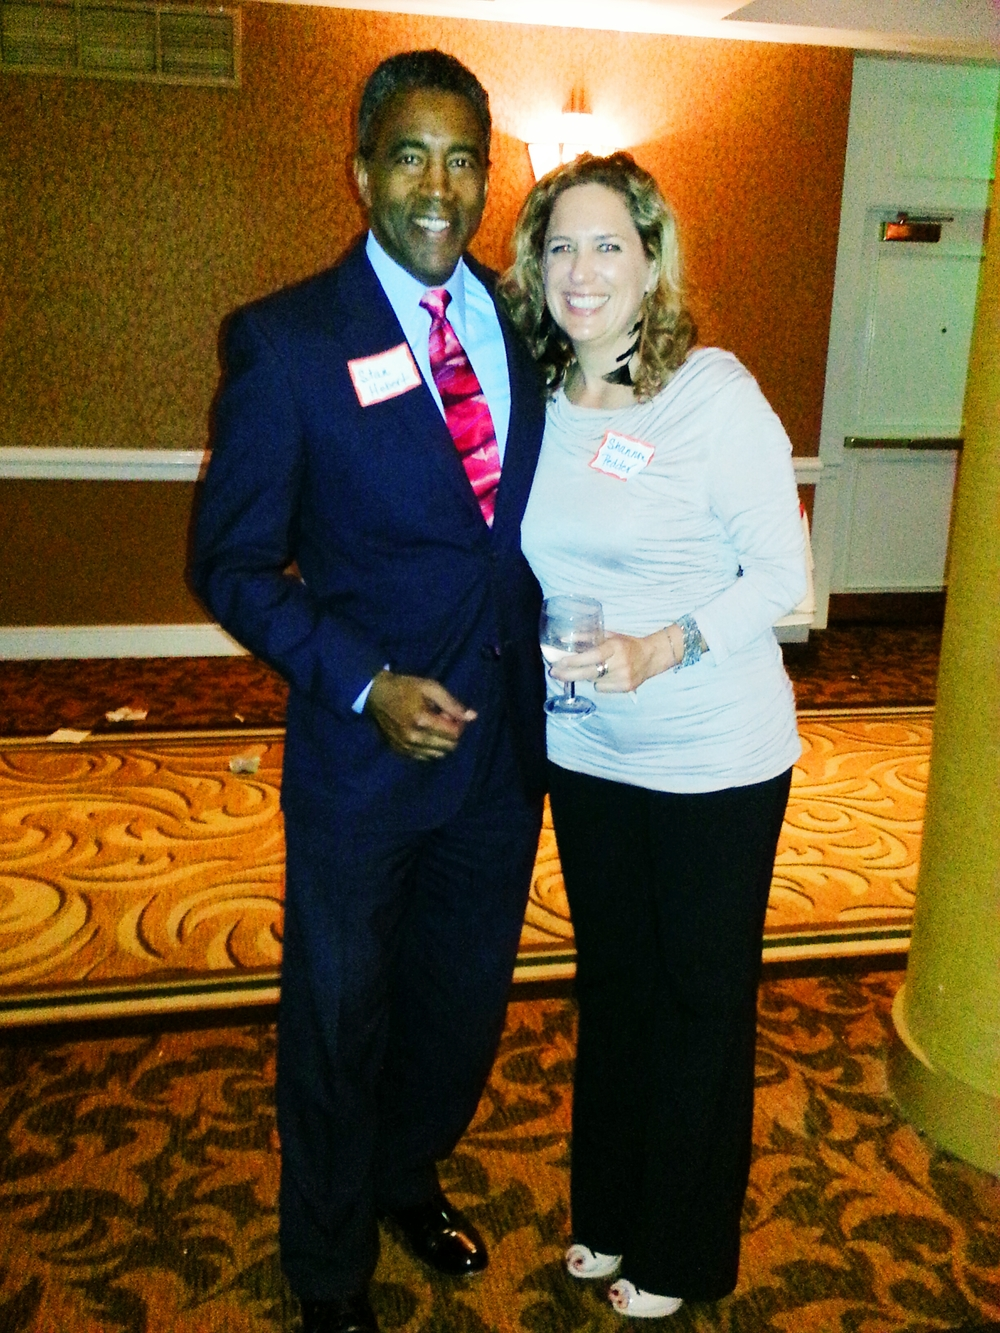 Board of Directors- Stanley P. Herbert III and Shannon Pedder (Chair of the Board)